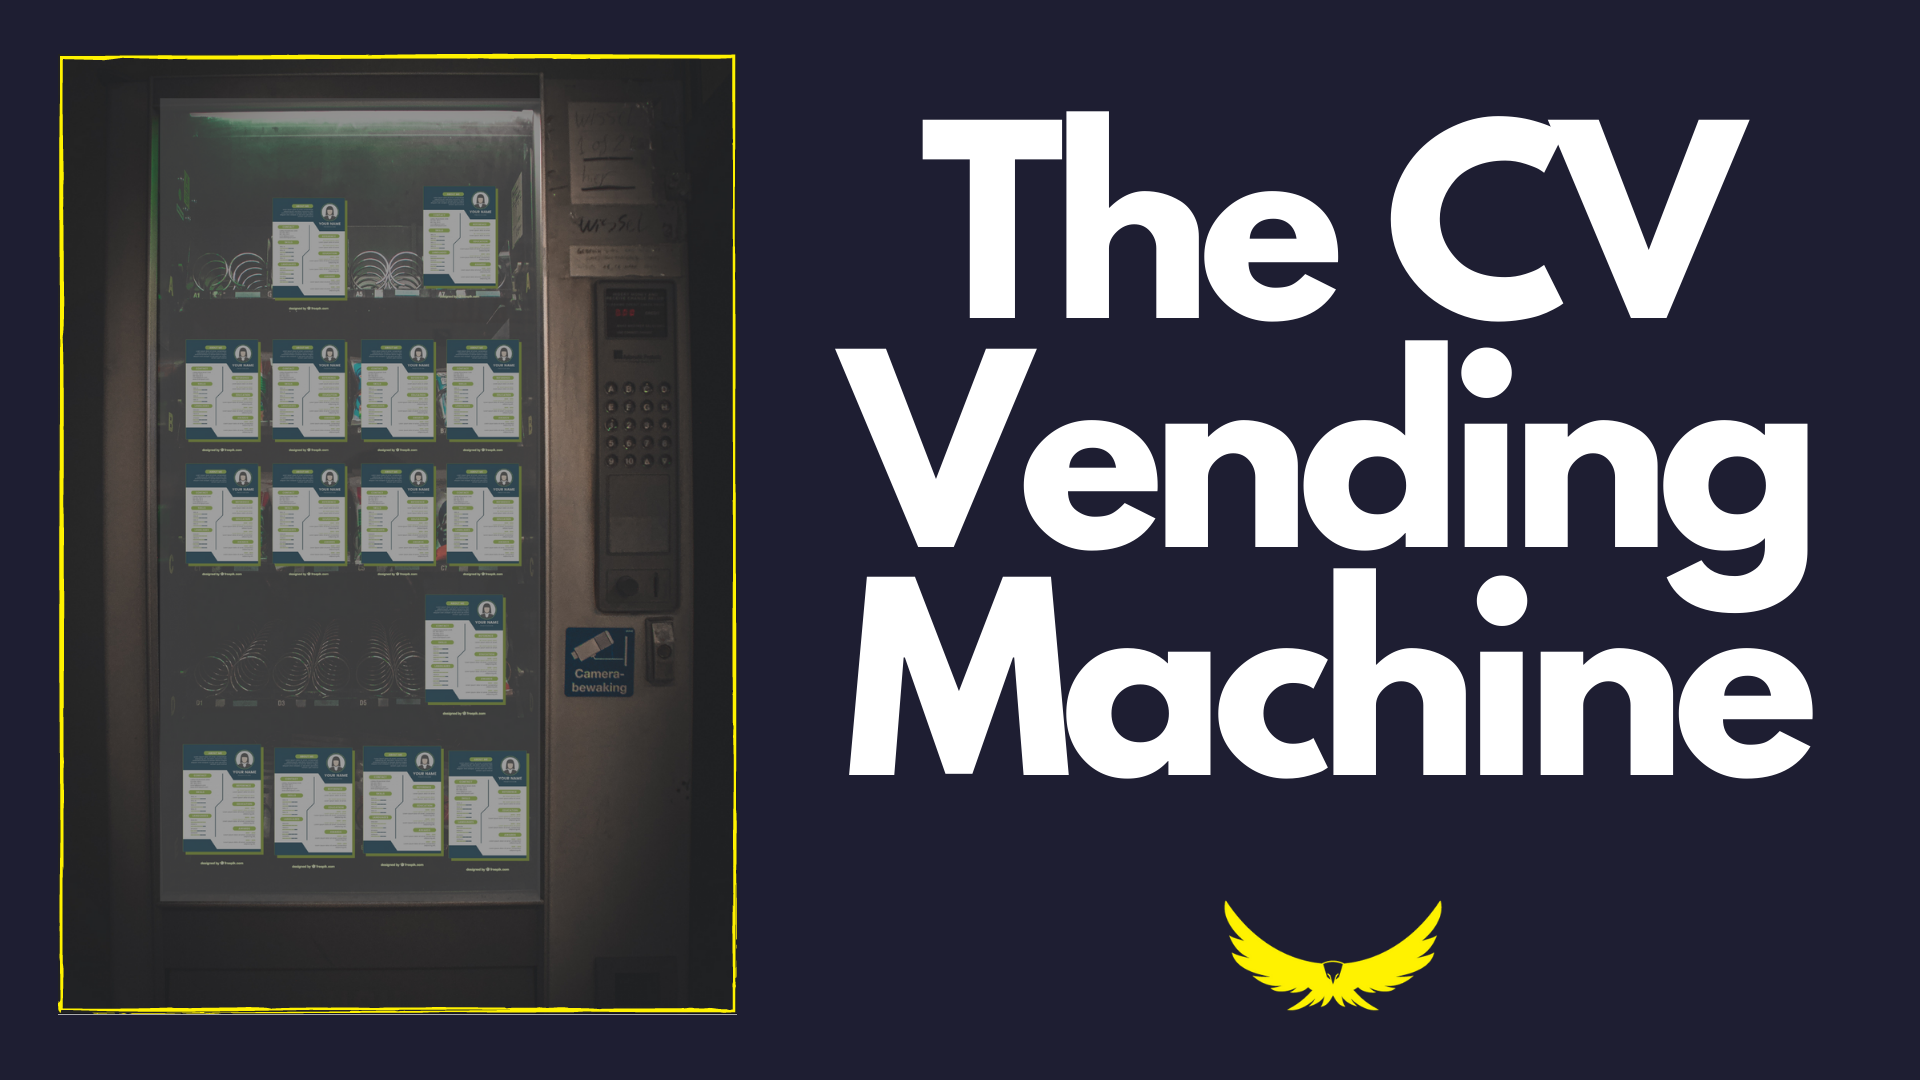 THE CV VENDING MACHINE